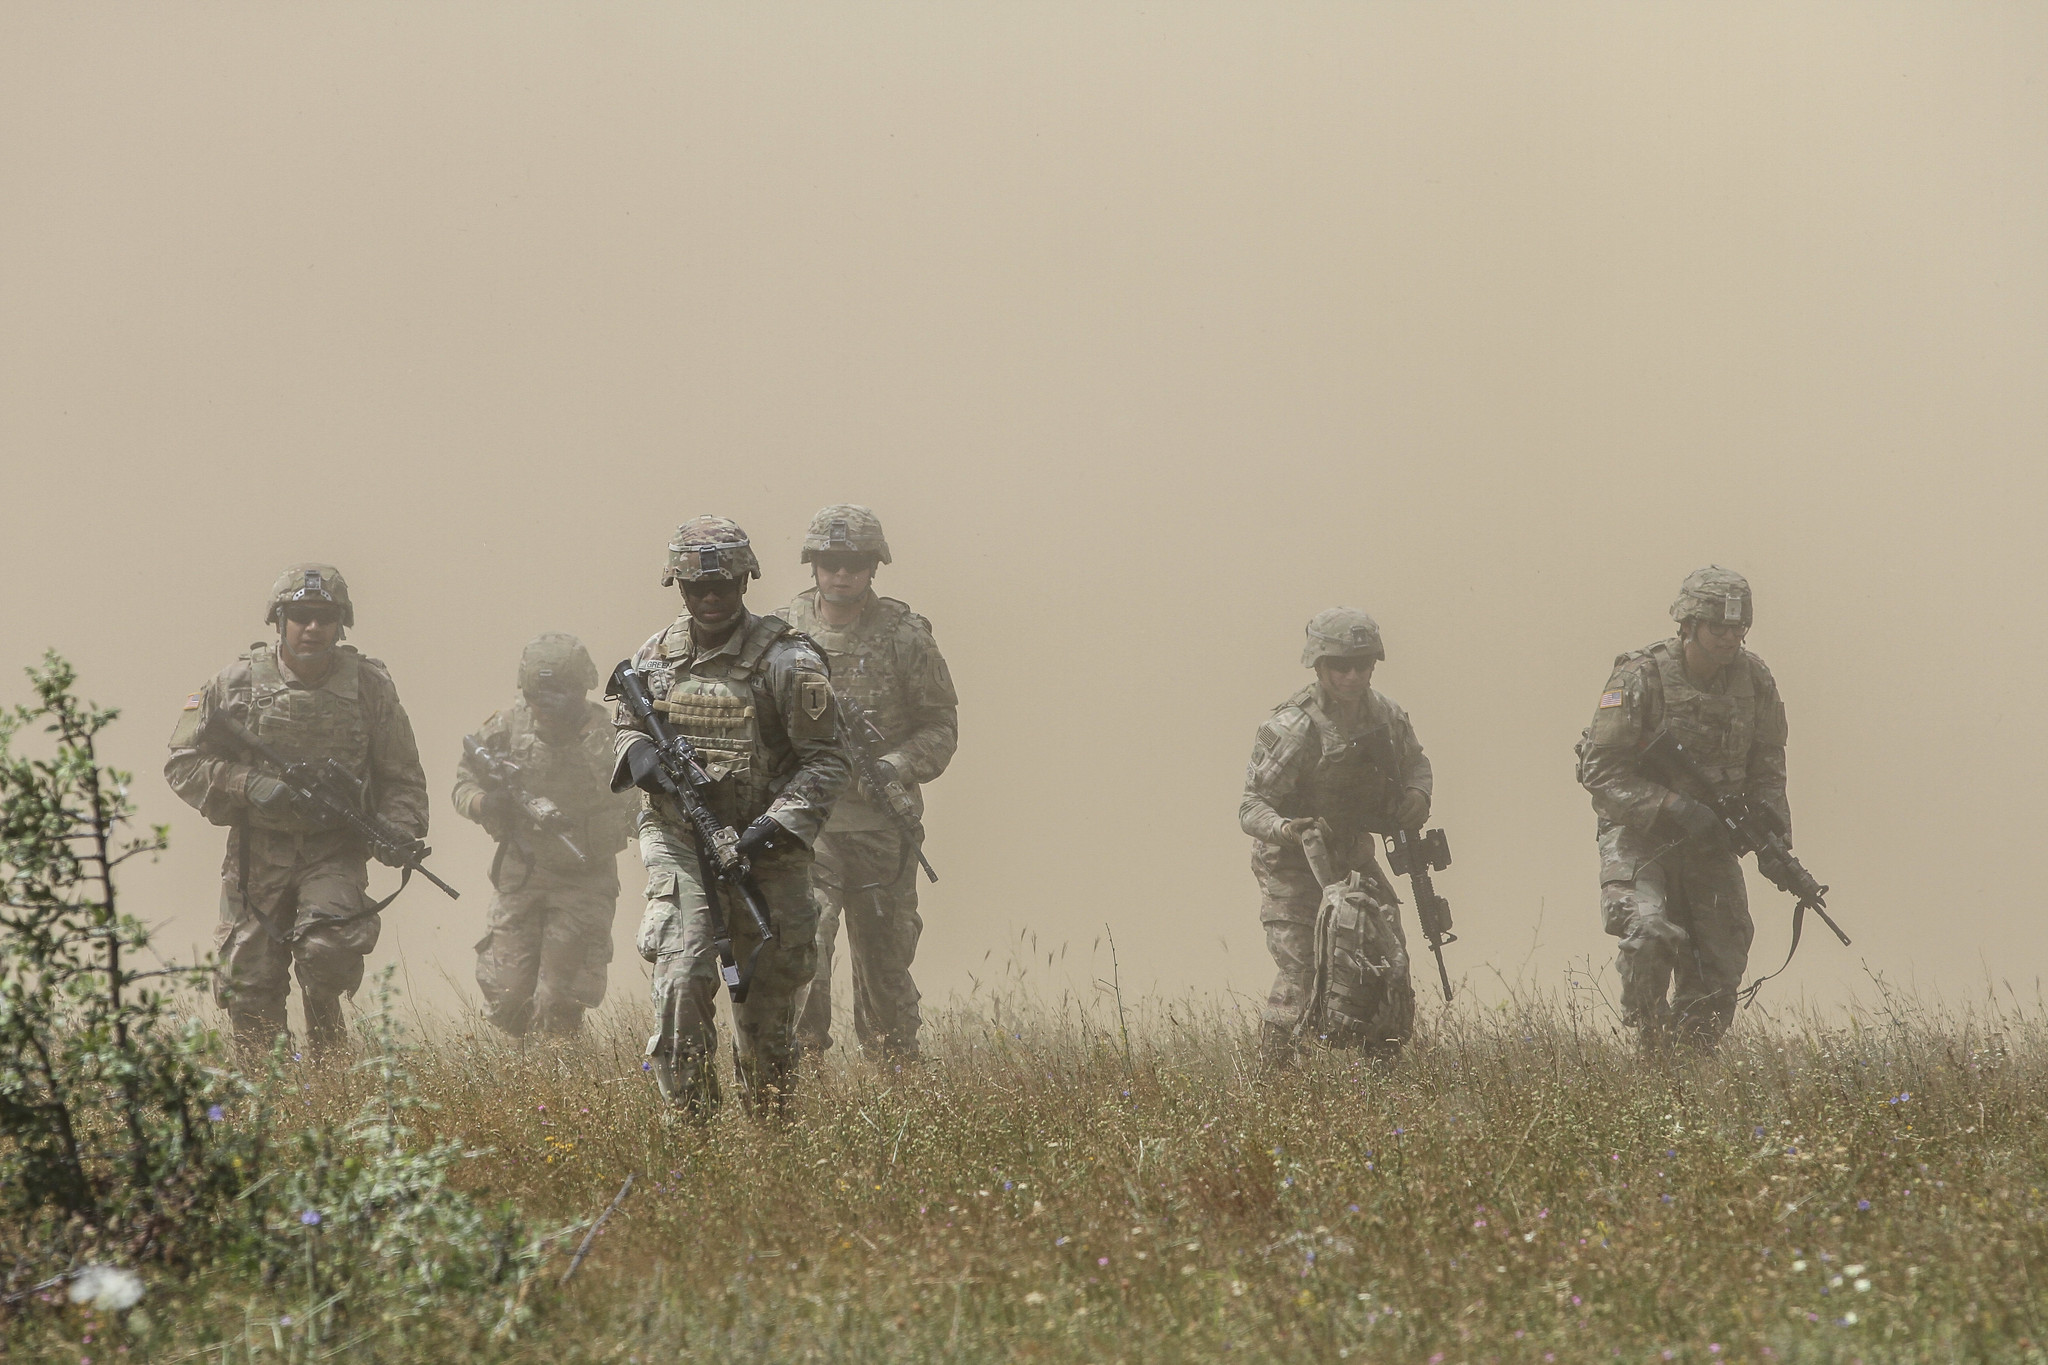 Cavalry scouts maneuver toward cover after an air assault during Platinum Lion 19 at Novo Selo Training Area in Bulgaria on July 9, 2019. (Staff Sgt. True Thao/Army)